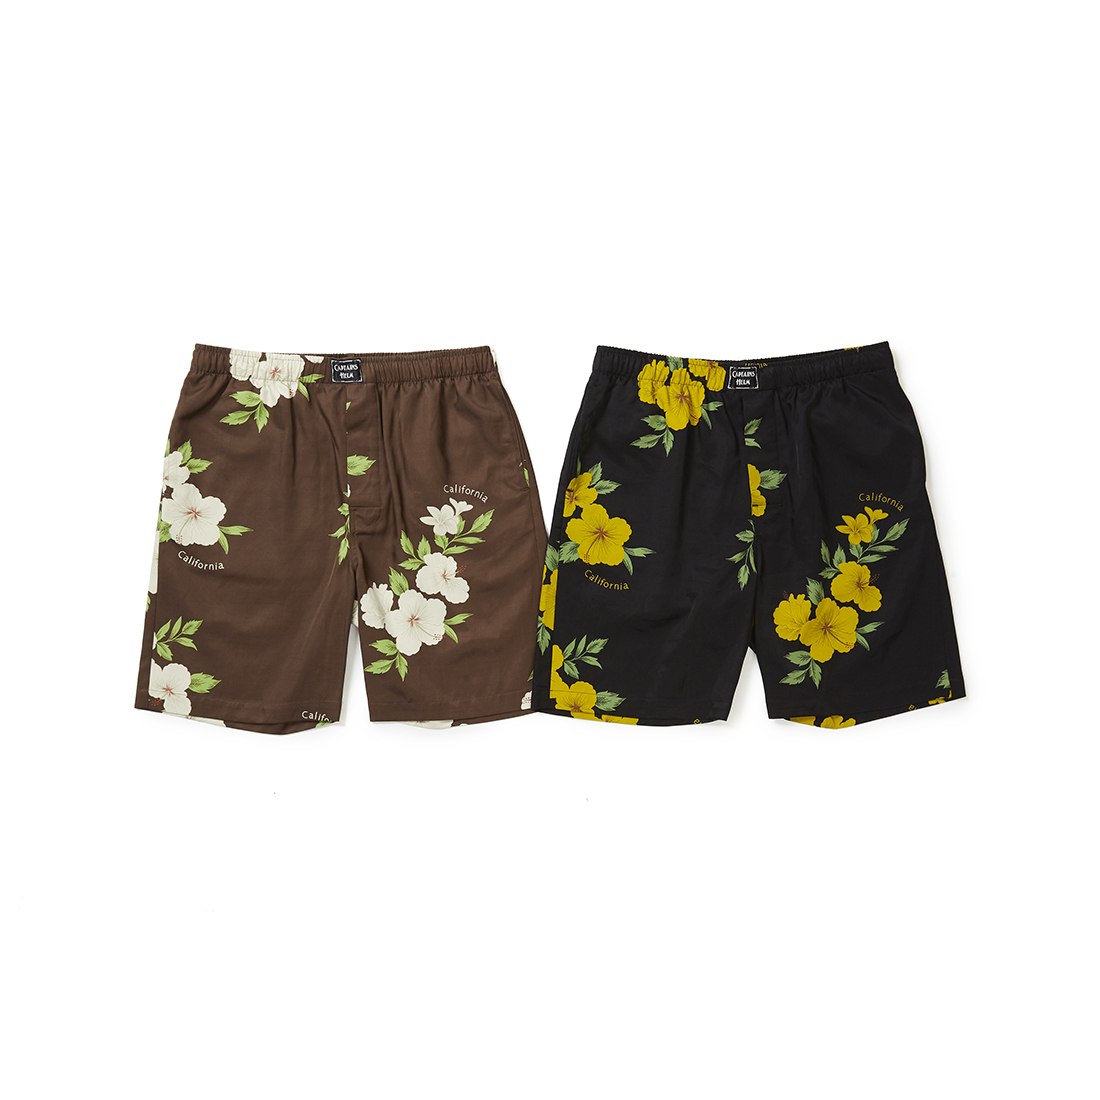 CAPTAINS HELM #CALIFORNIA ALOHA SHORTS1